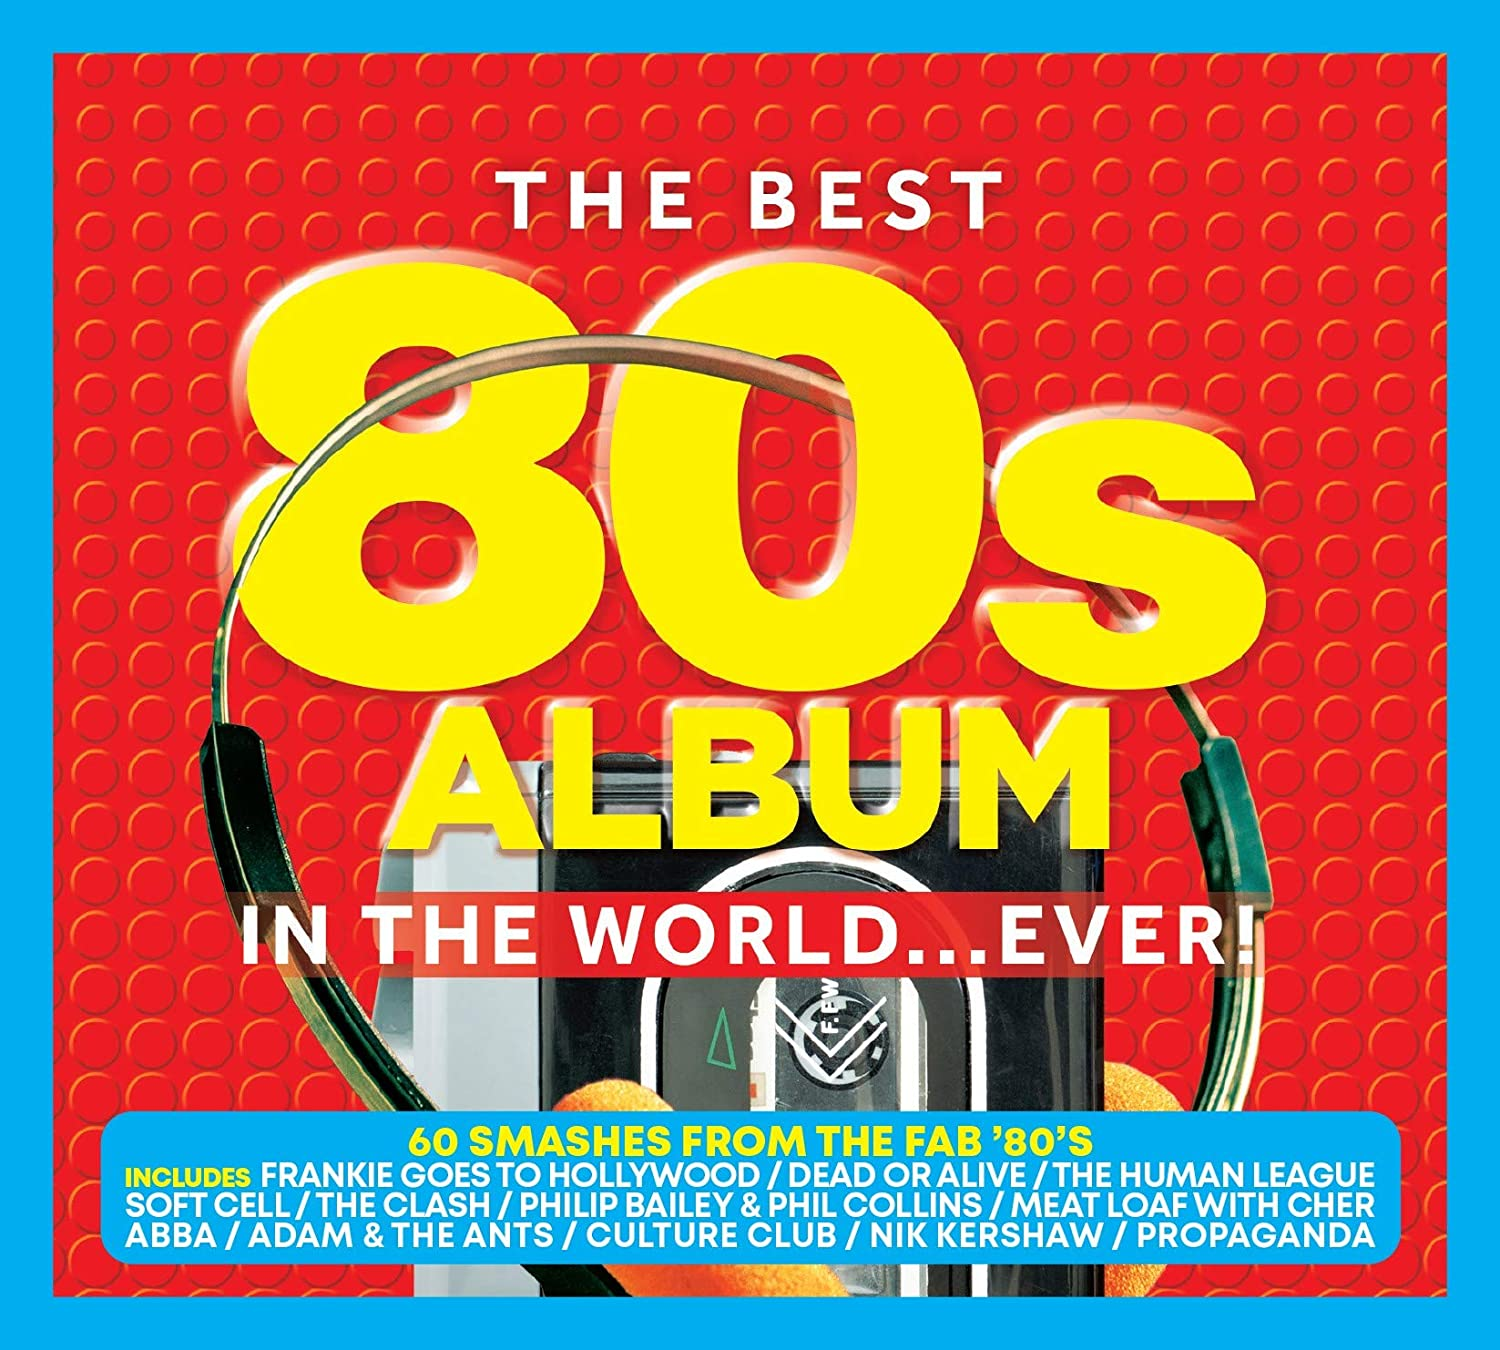 The Best 80's Album In The World... Ever!: Amazon.co.uk: Music